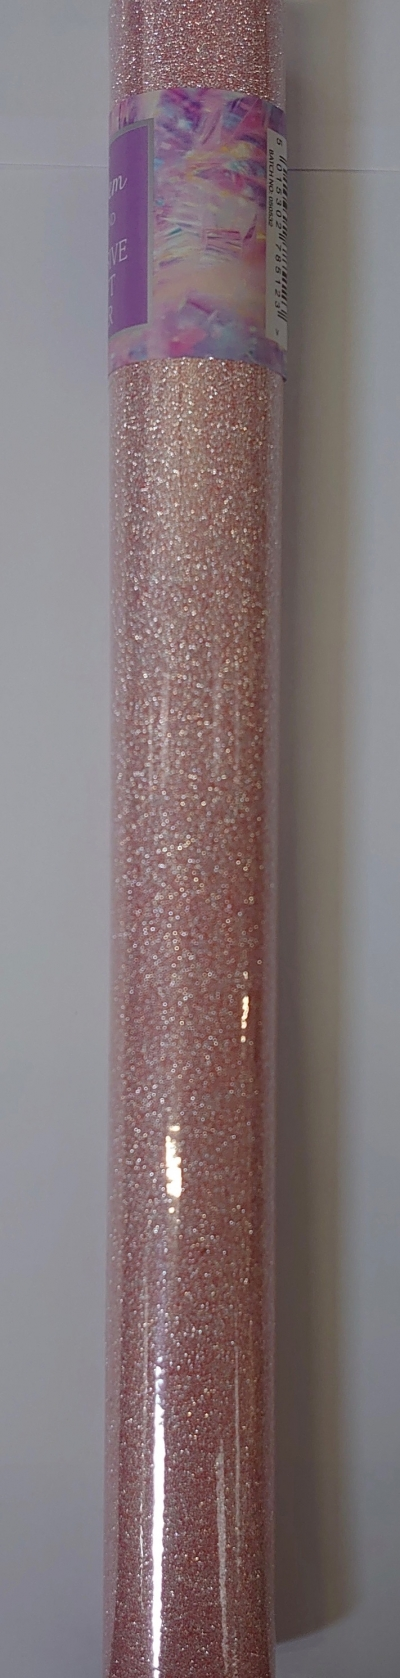 1m non shed adhesive glitter roll - peach